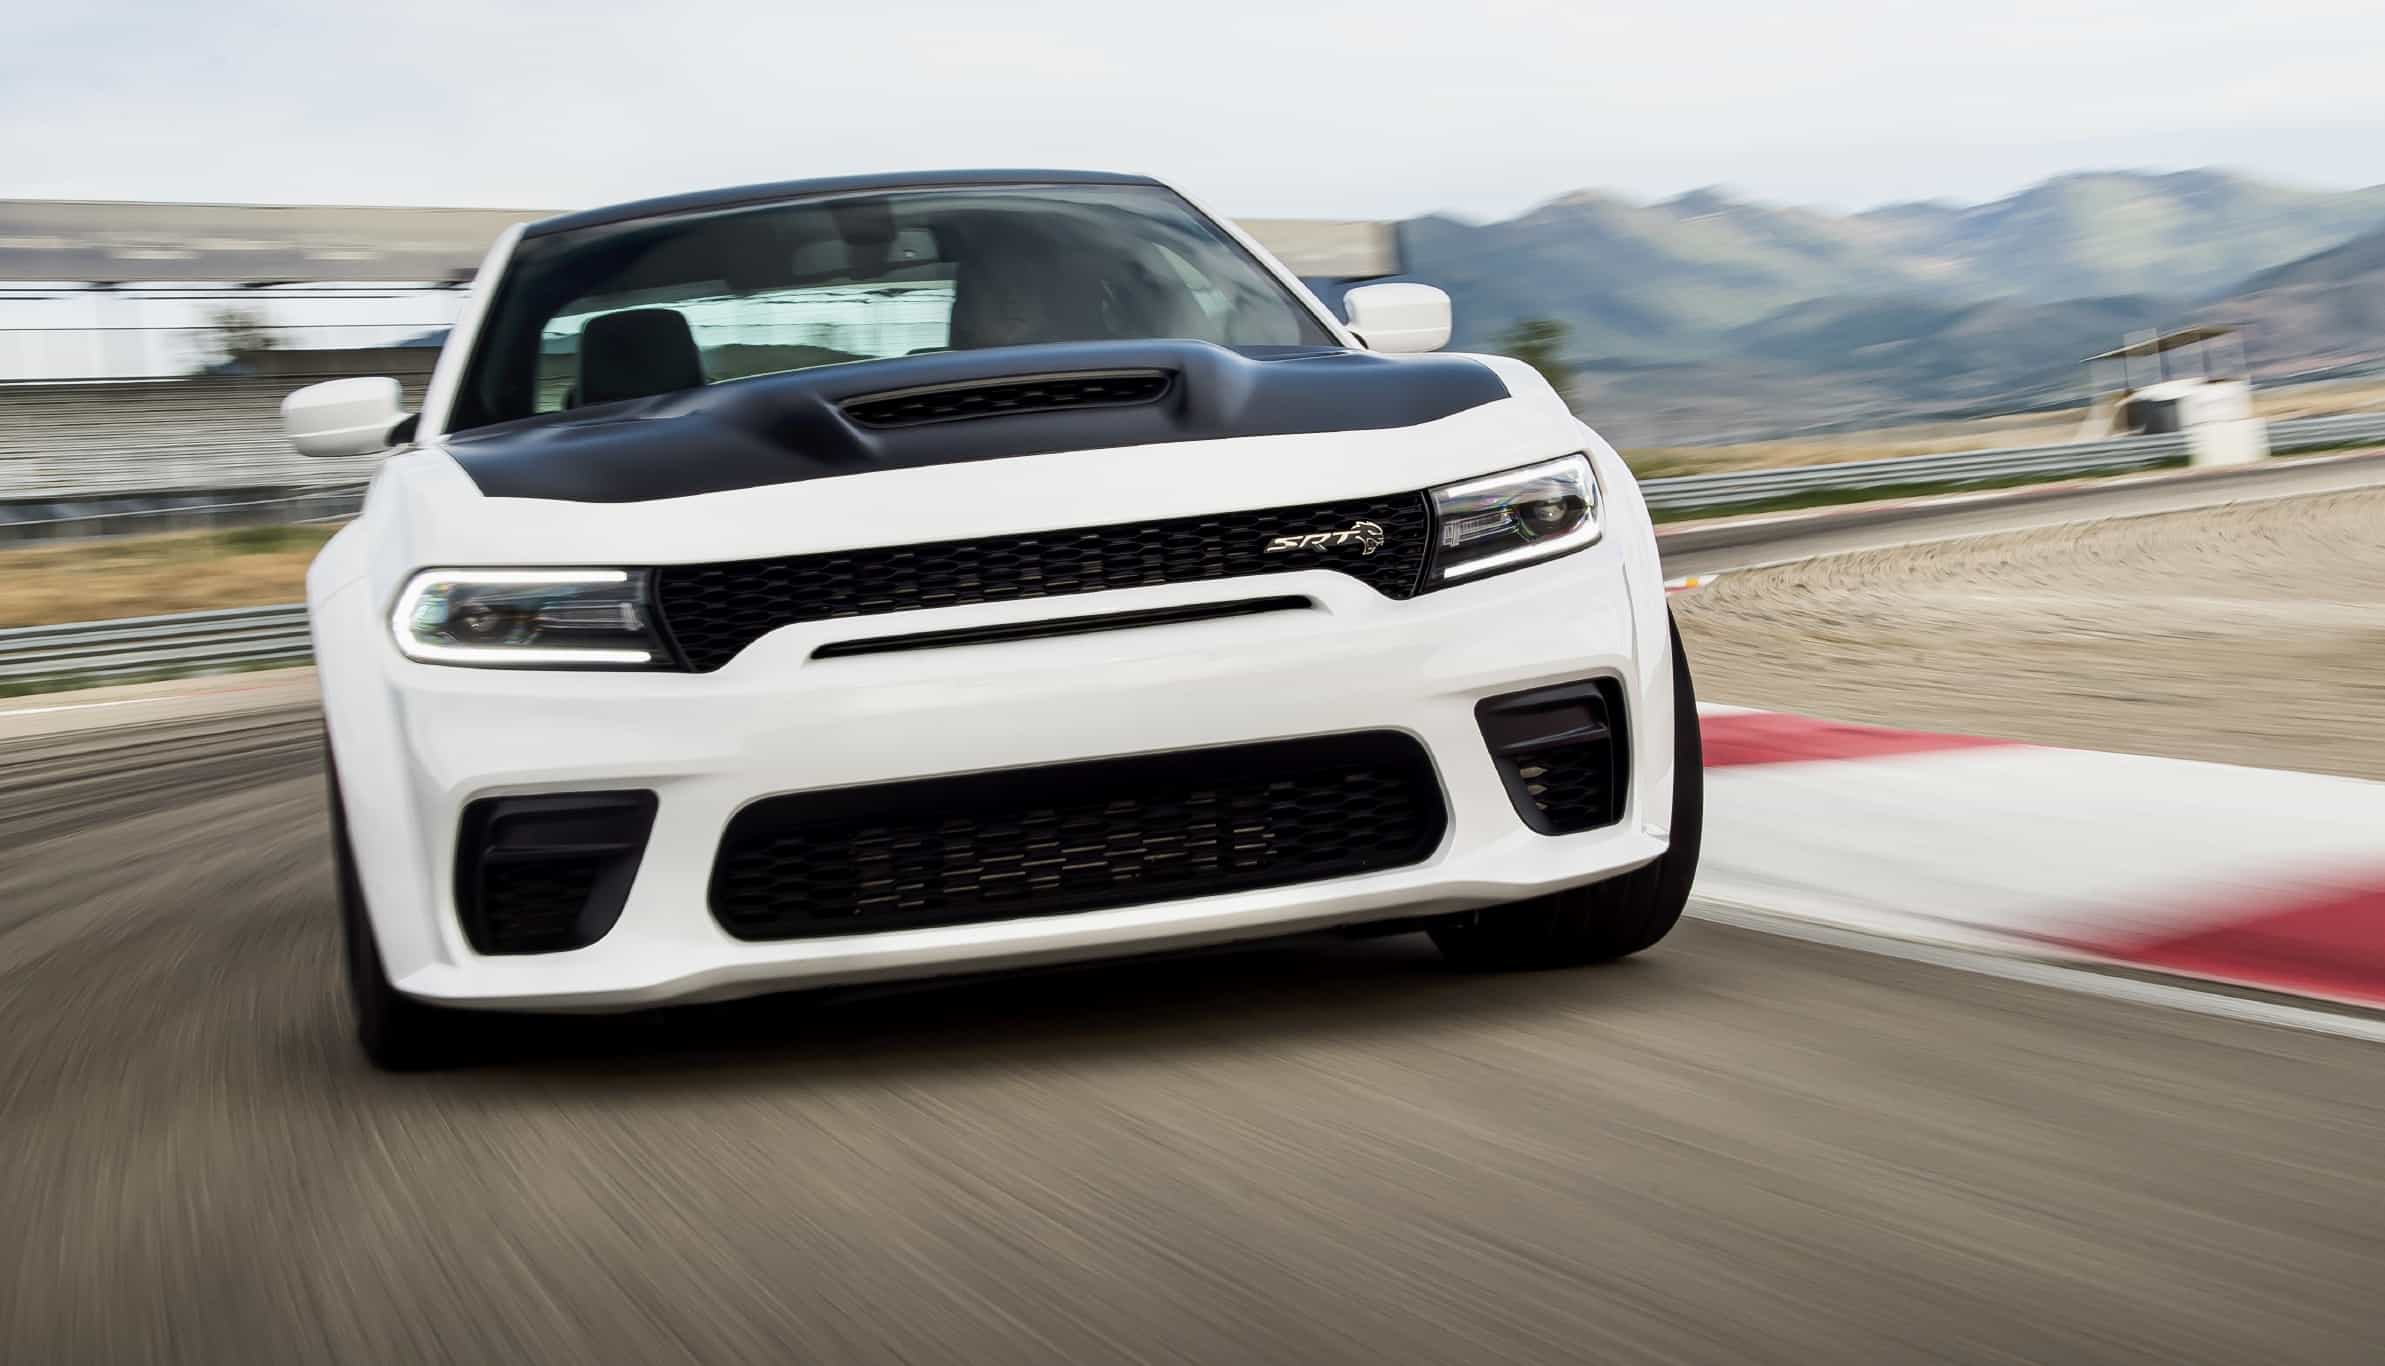 Dodge, Fireworks for the 4th! Dodge introduces hellishly powerful Charger, Challenger, ClassicCars.com Journal